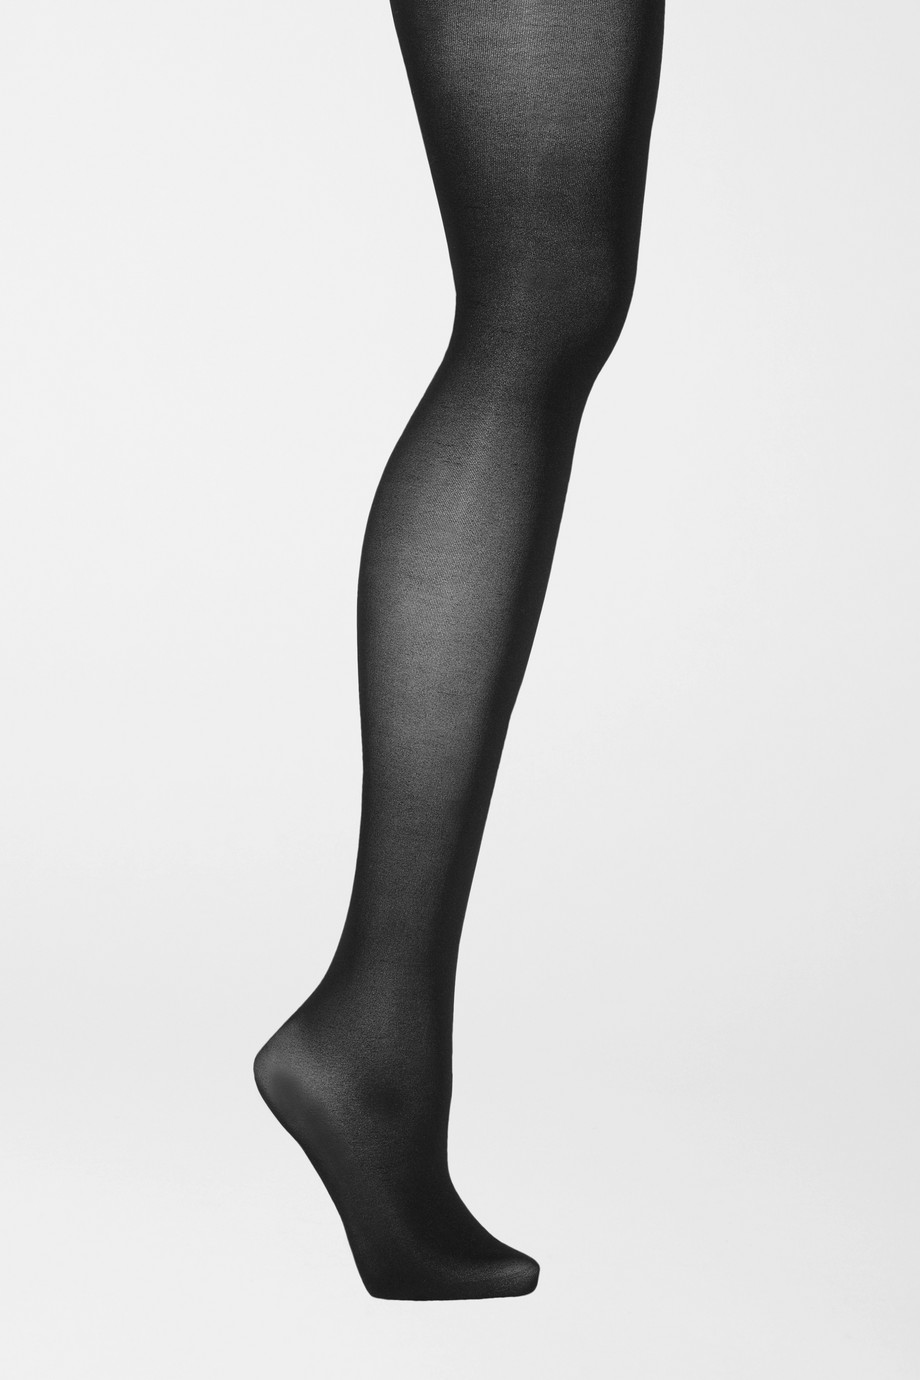 FALKE Pure Matt 50 denier tights